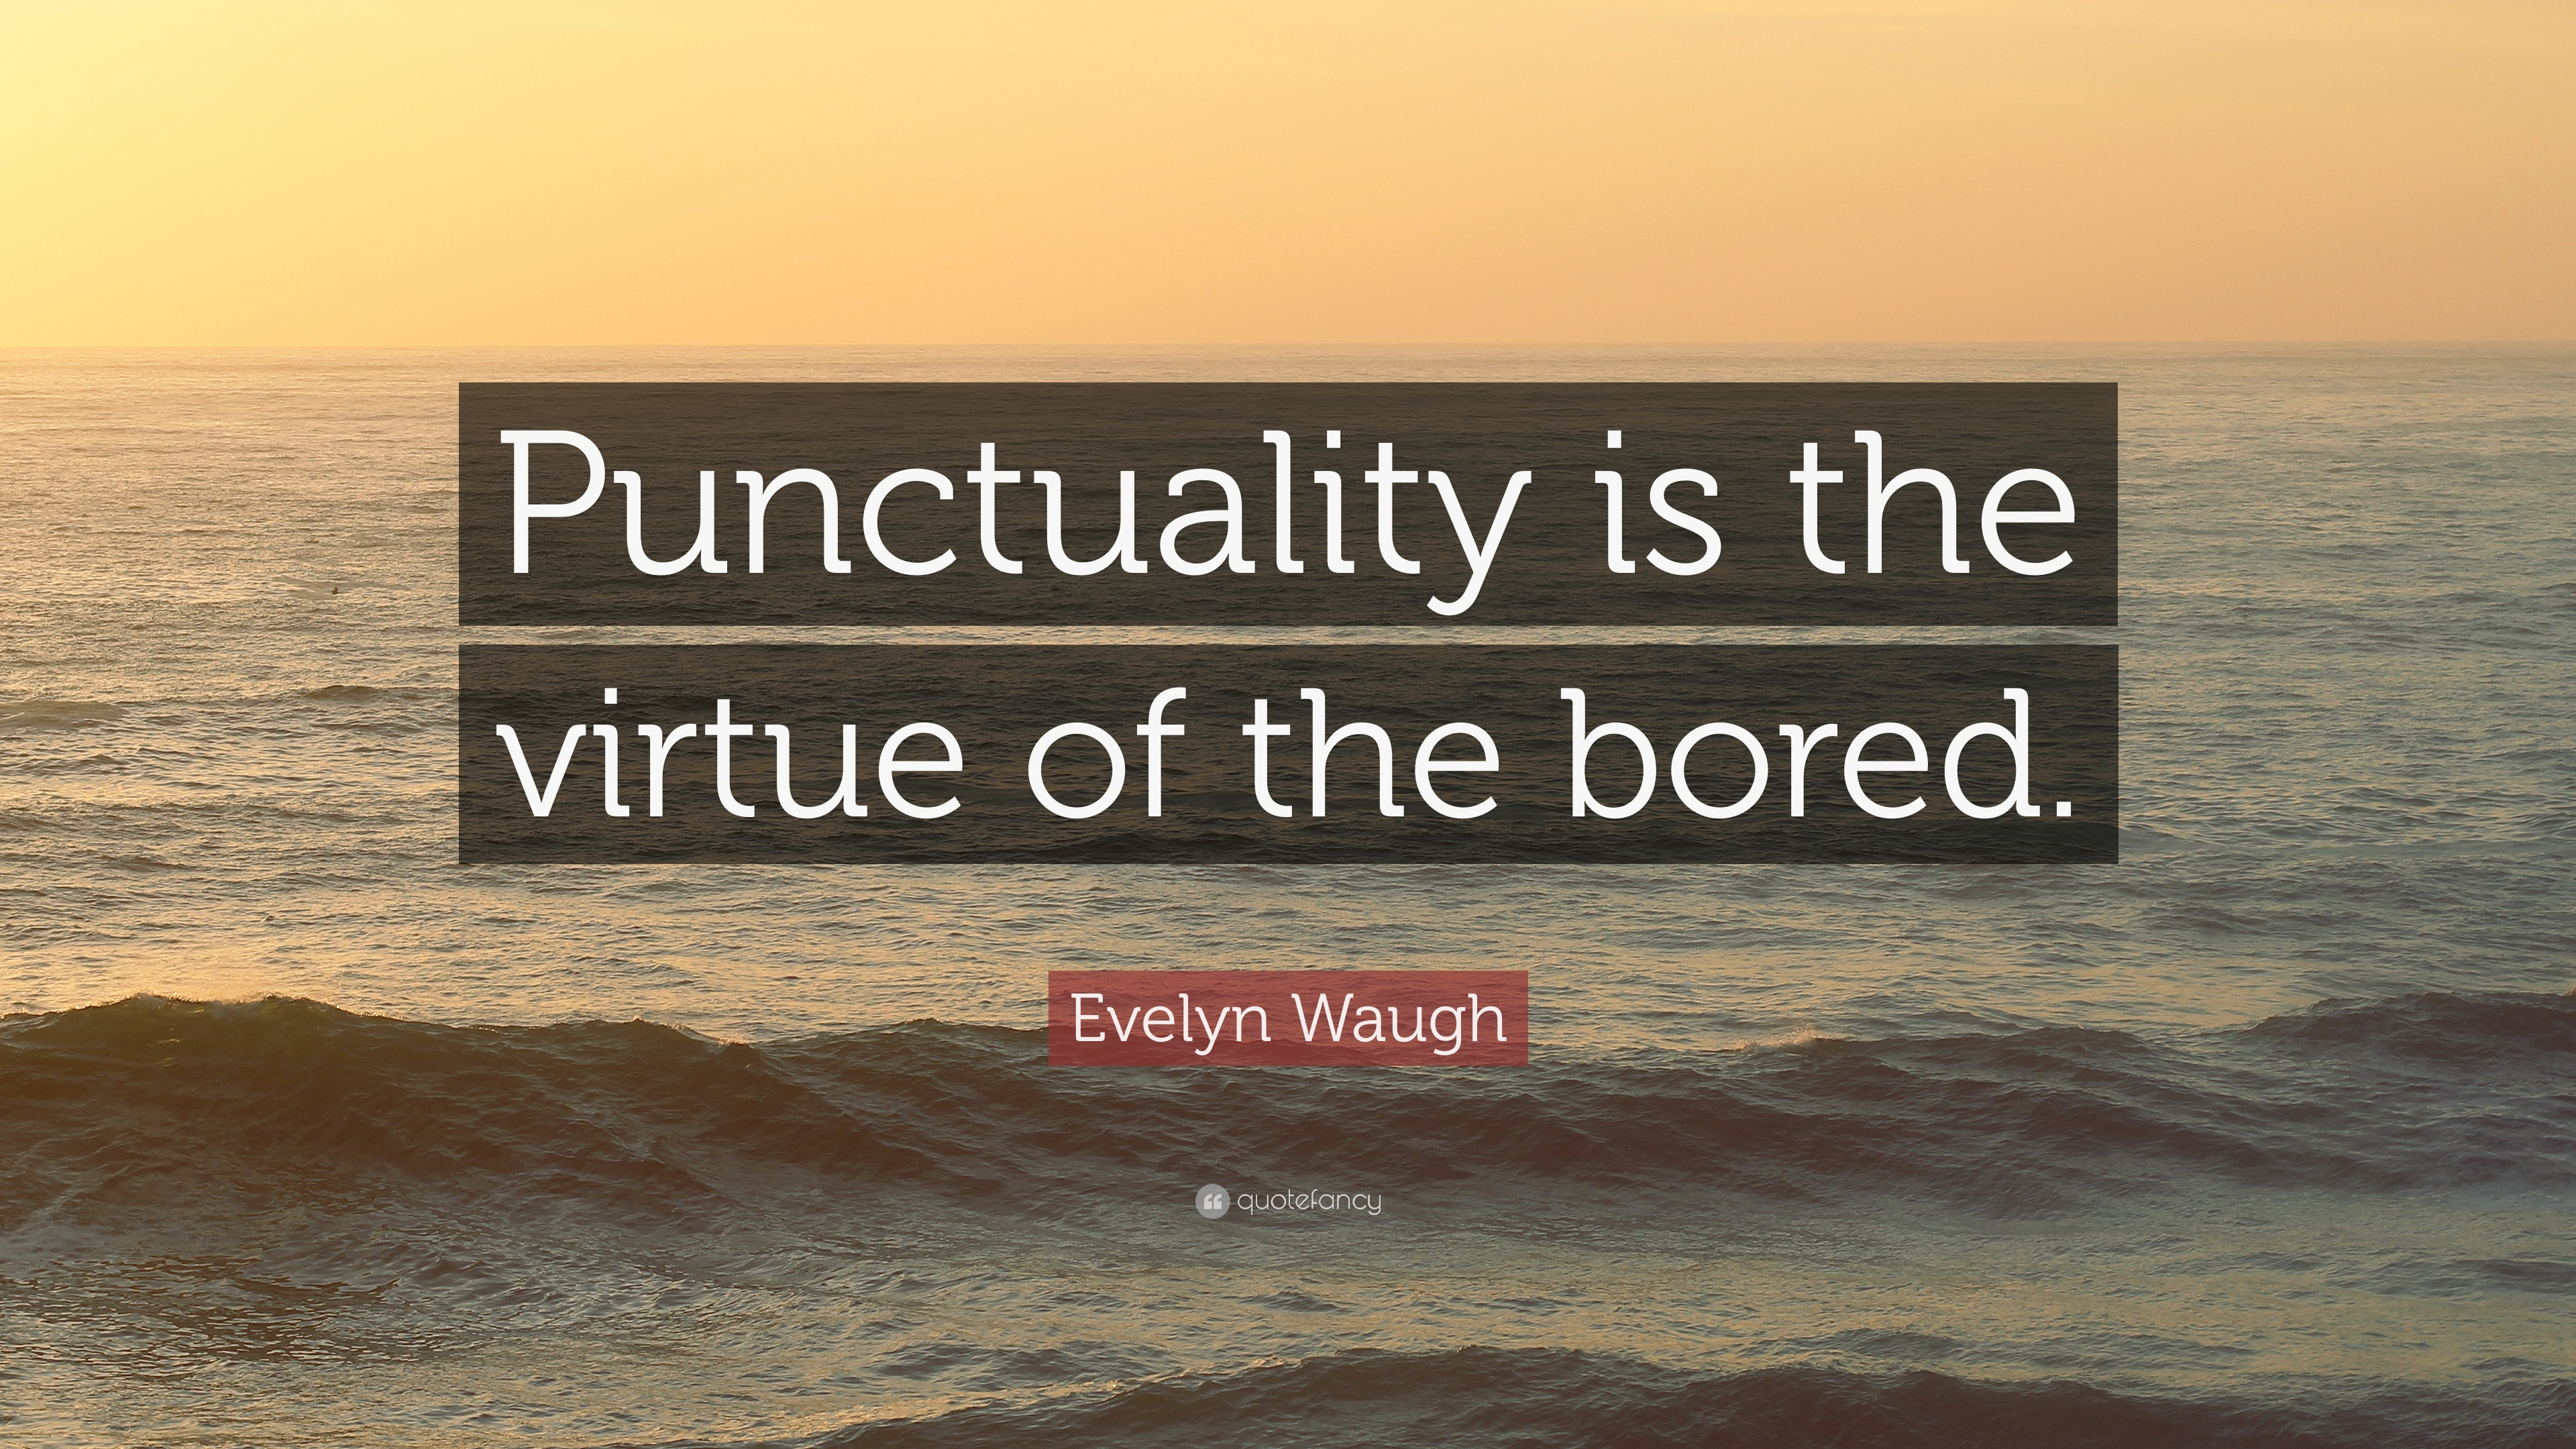 essay on punctuality is the virtue of the bored Never heard the expression, but i suspect it implies that a bored person has  nothing to do, and therefore rushes to his appointments i think the.